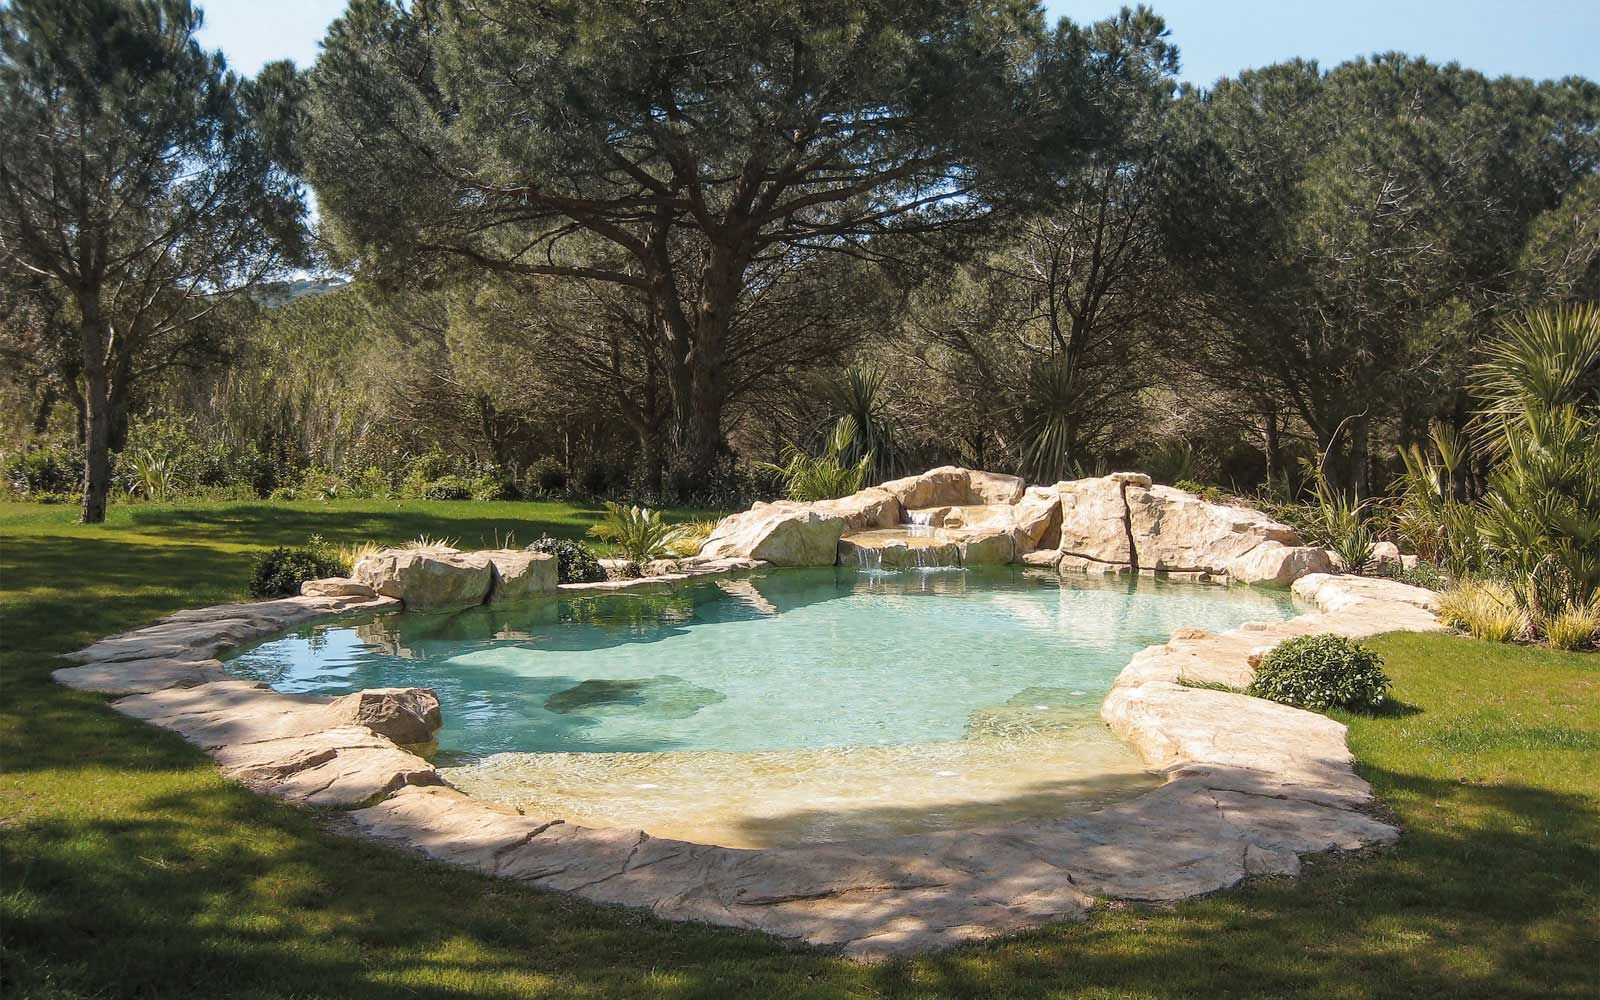 piscine paysag e avec cascade pools pinterest pigments naturels les cascades et rochers. Black Bedroom Furniture Sets. Home Design Ideas